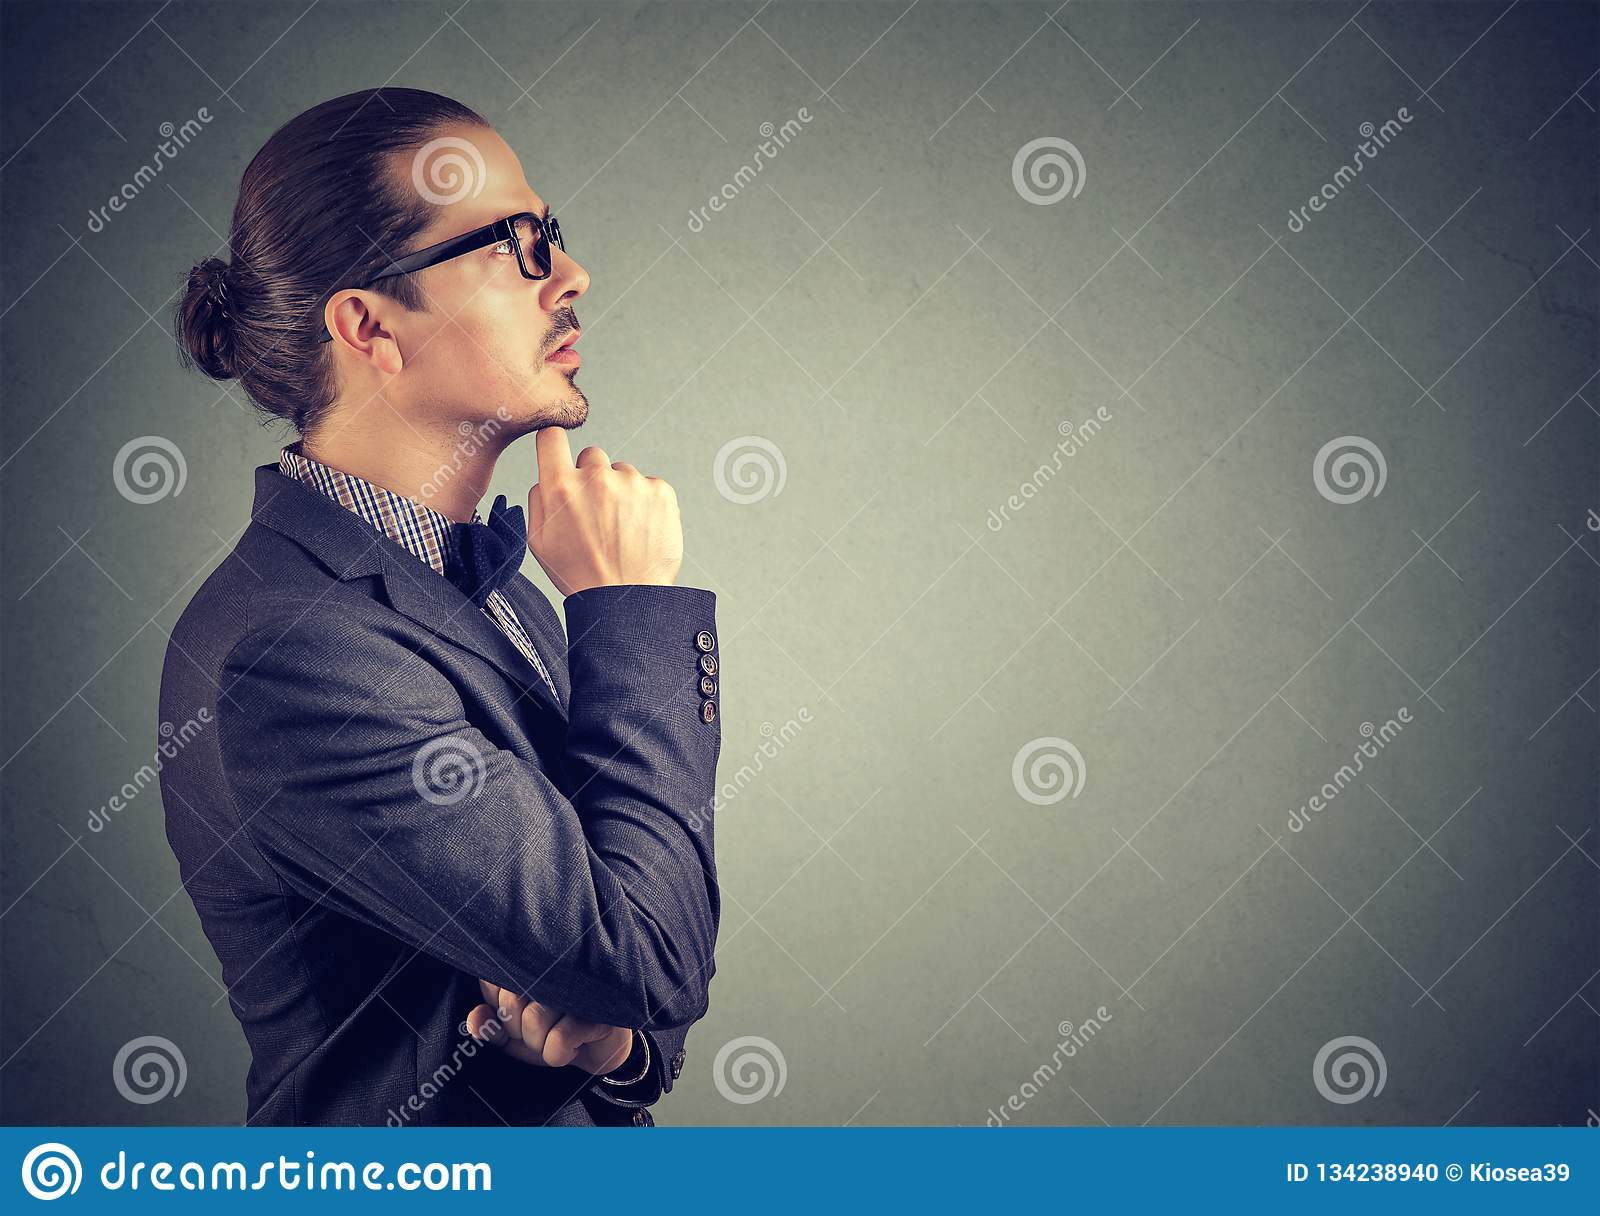 Pensive man touching lips while remembering